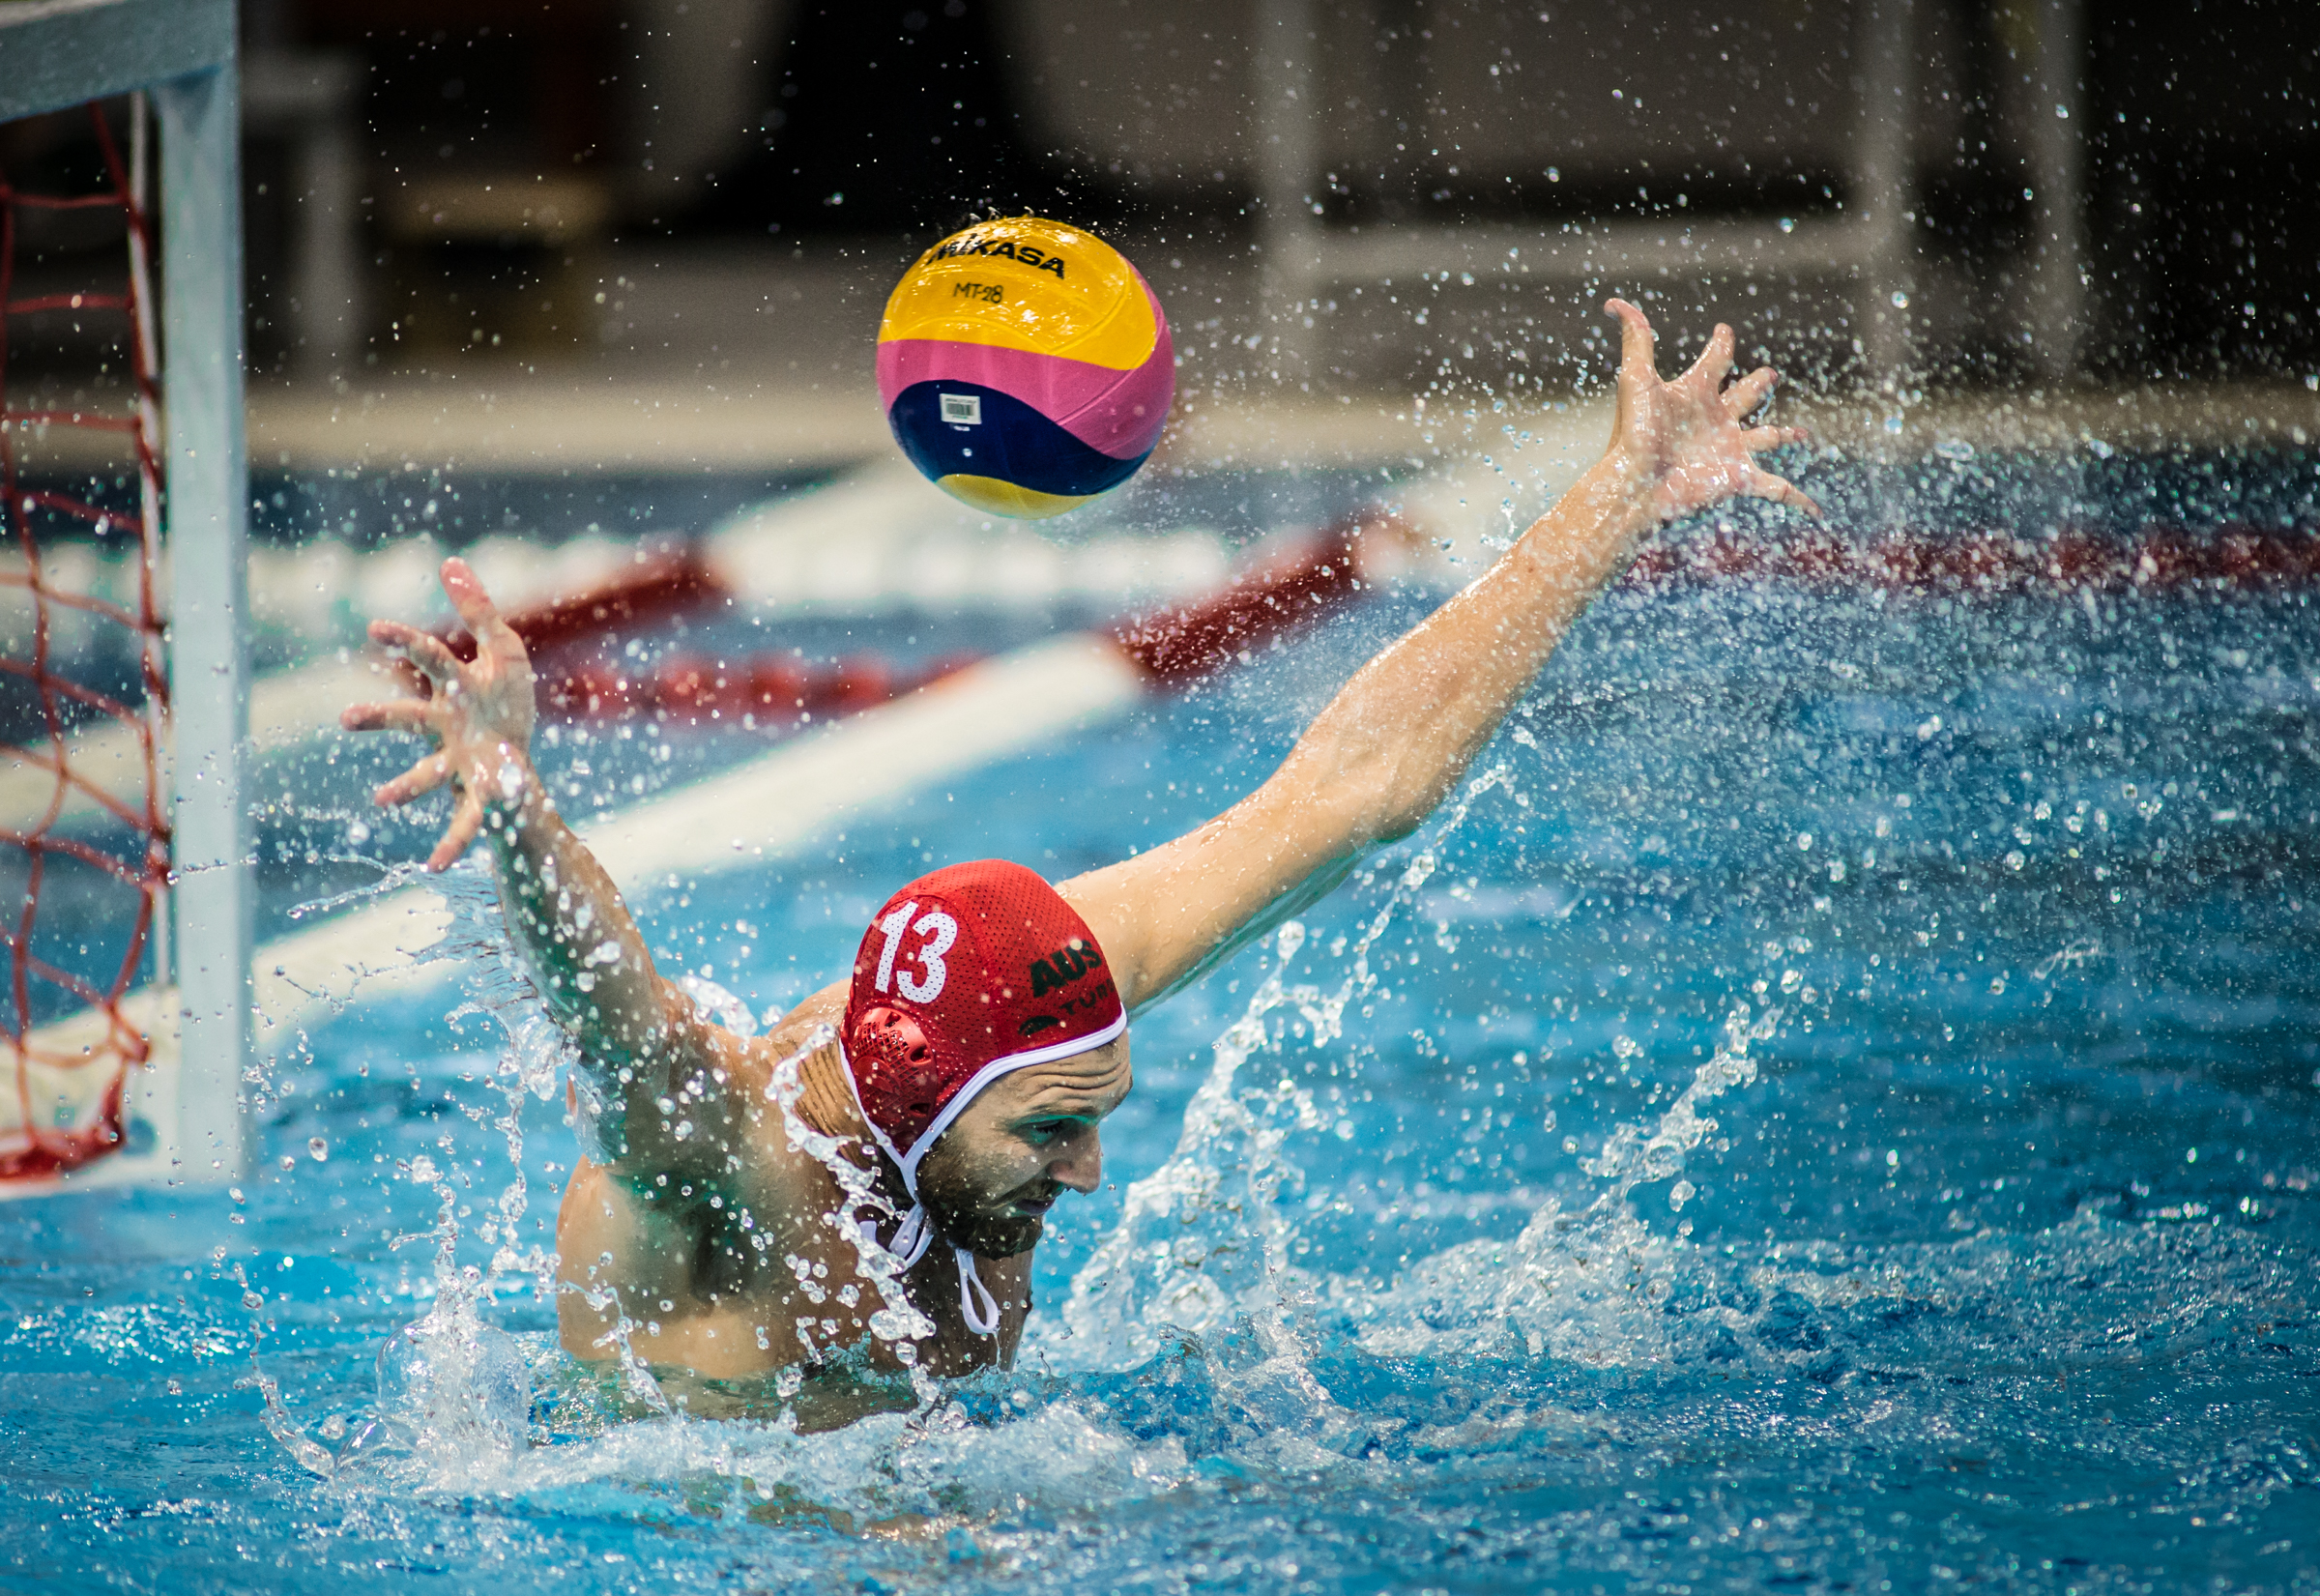 An Australian goal keeper attempts to block the ball during the Greece vs Australia pre-Olympic sparring match at the OCBC Aquatic Centre.